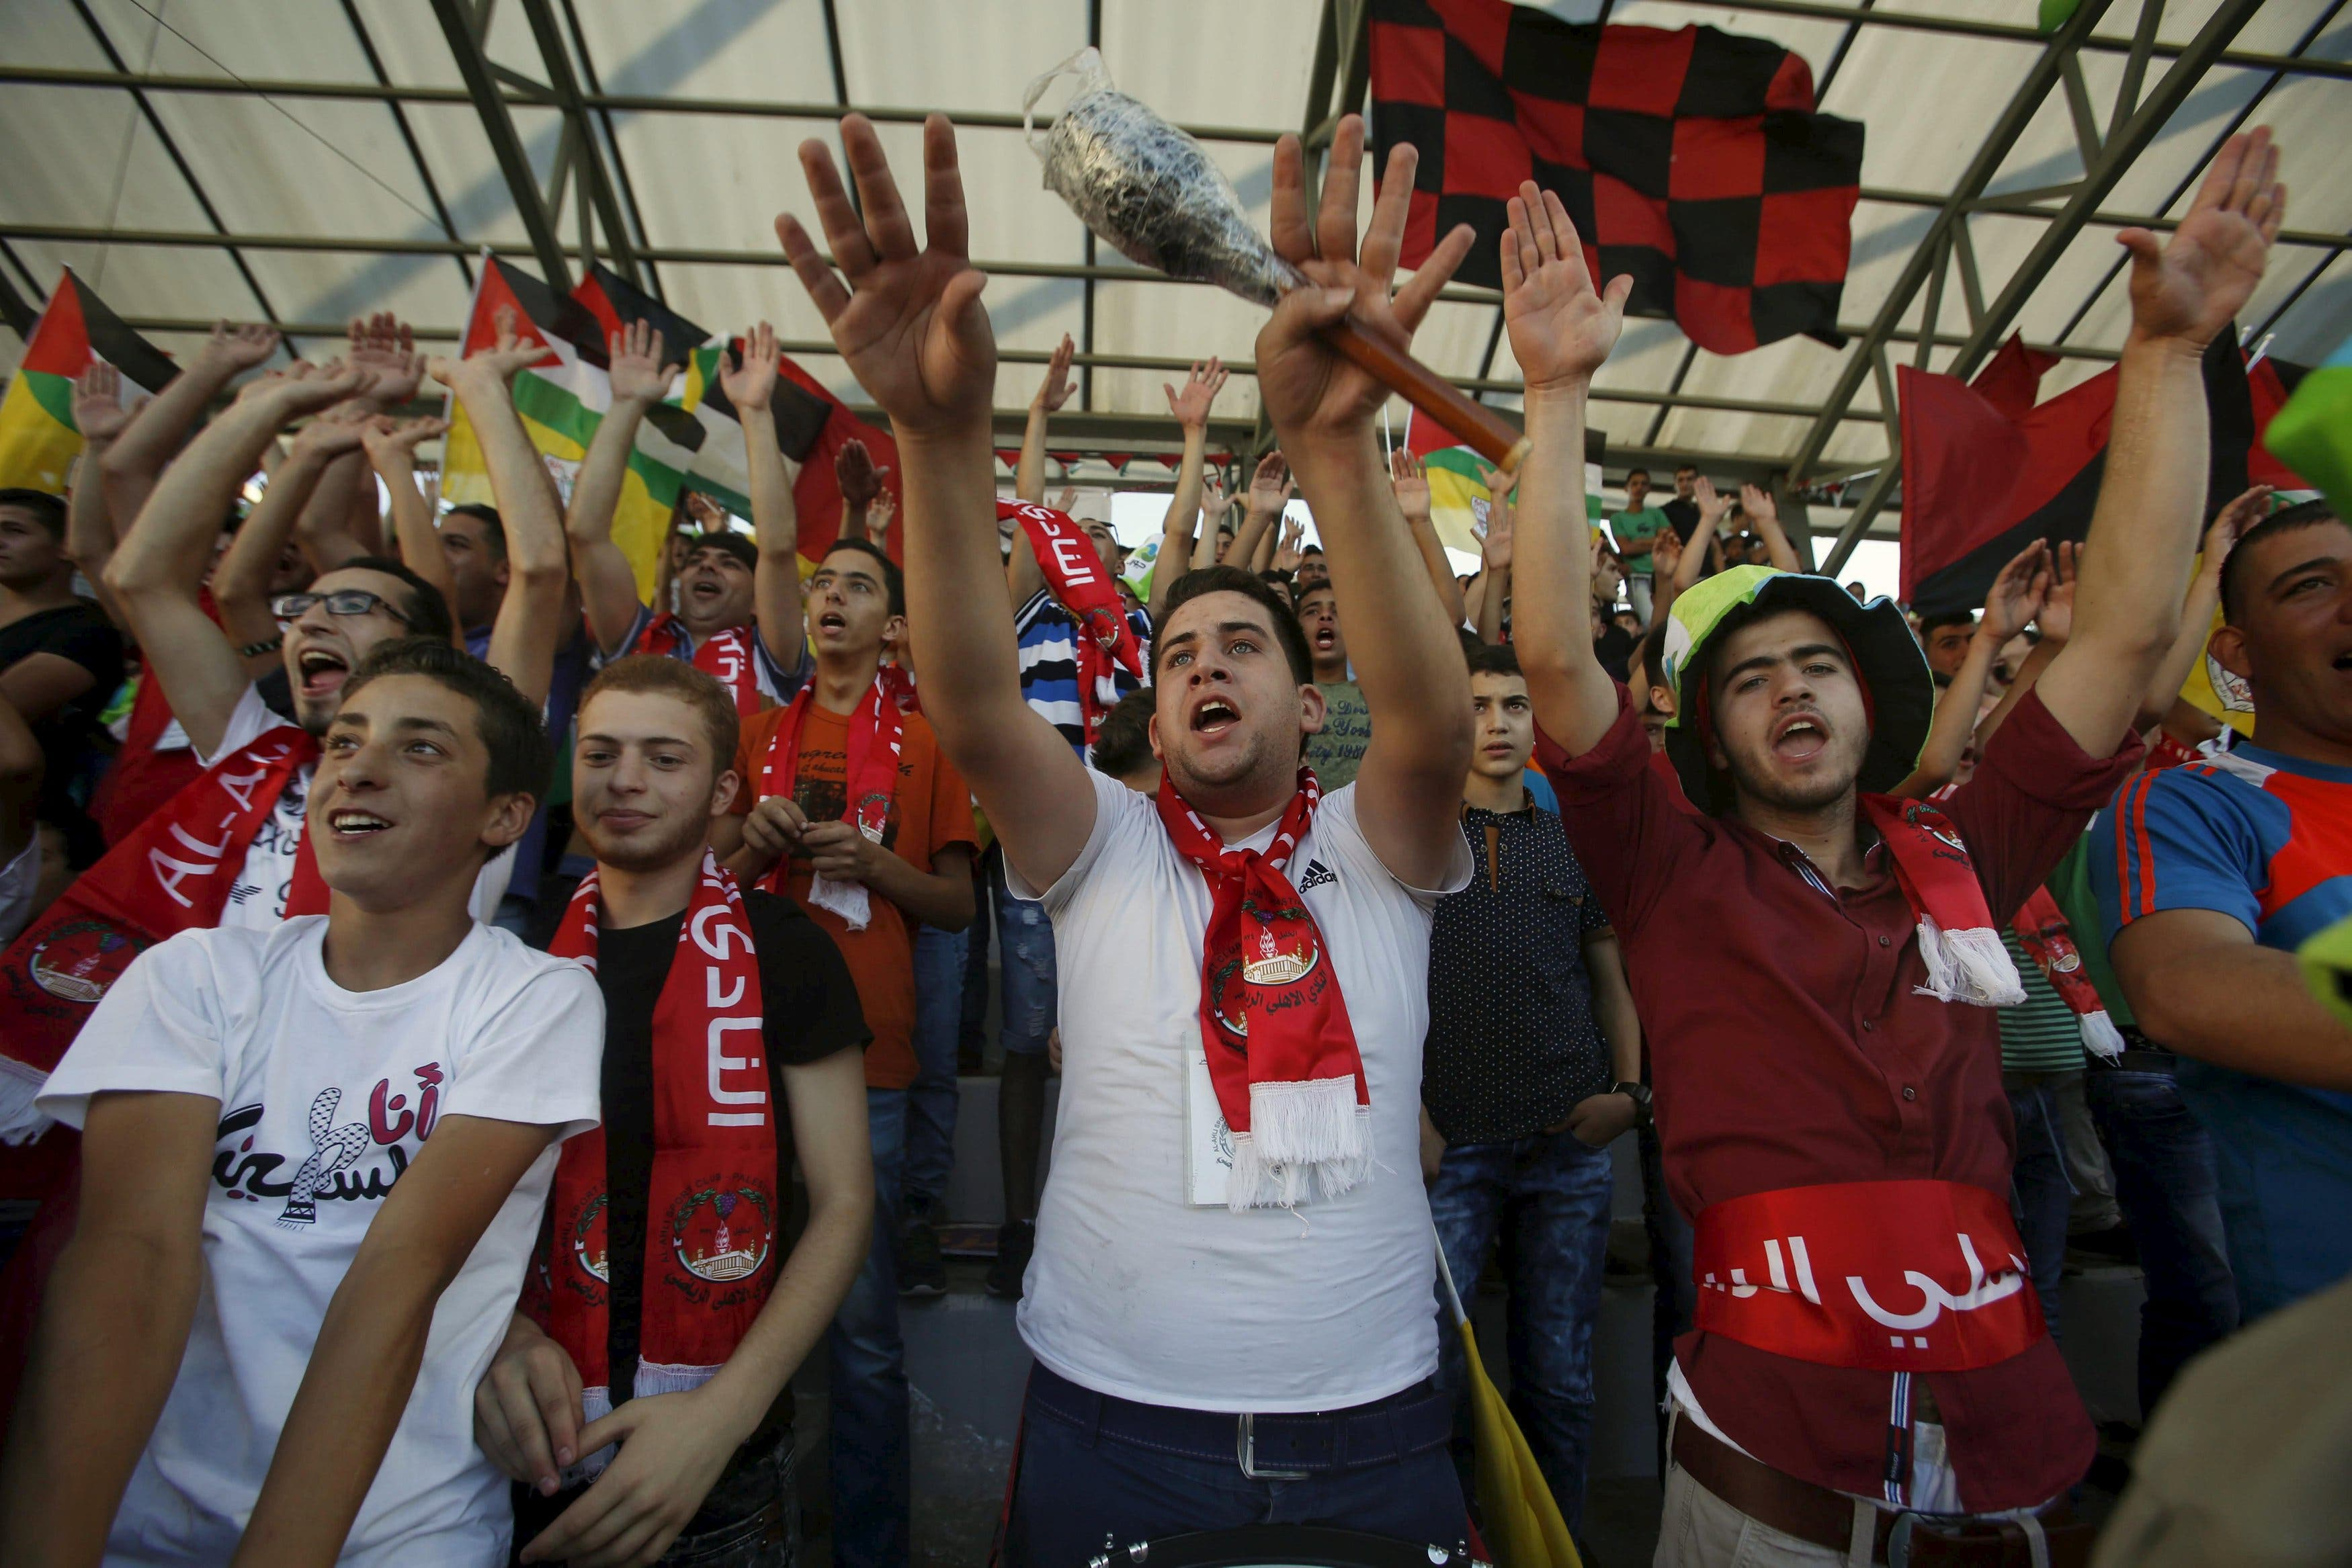 Fans of Hebron's Al-Ahly cheer and chant during their second leg of the Palestine Cup final soccer match against Gaza Strip's Shejaia at al-Hussien stadium in the West Bank city of Hebron August 14, 2015. REUTERS